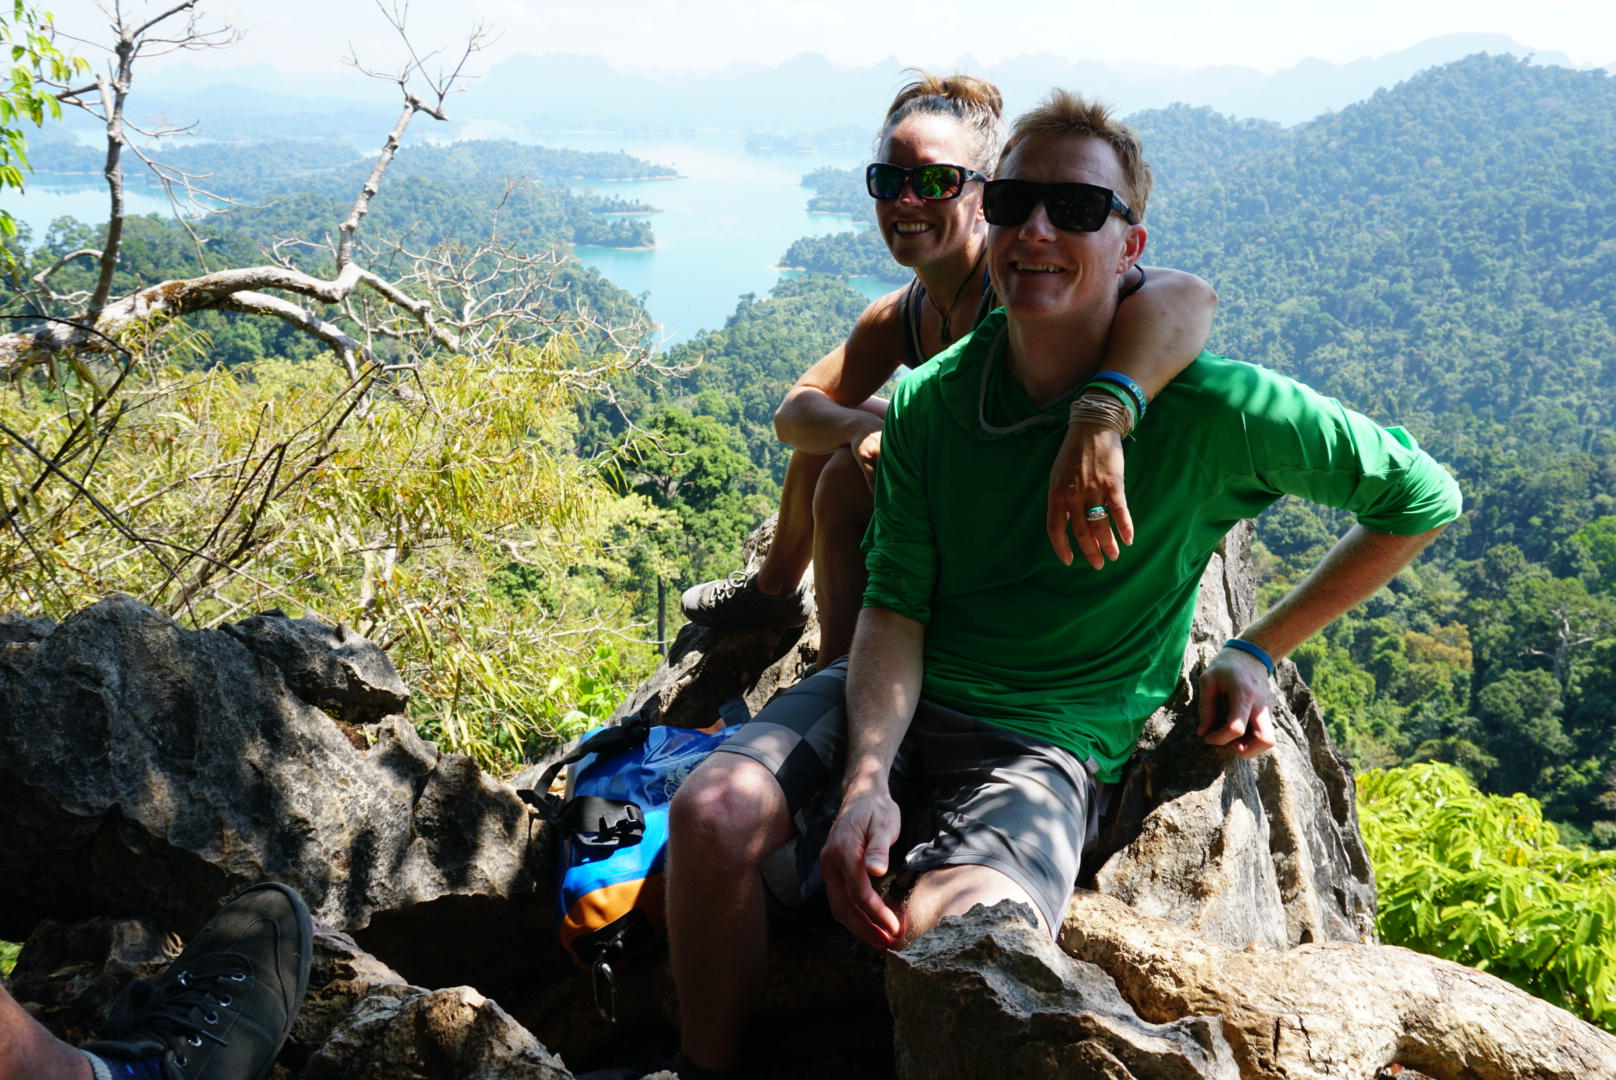 Atop a hike in southern Thailand.